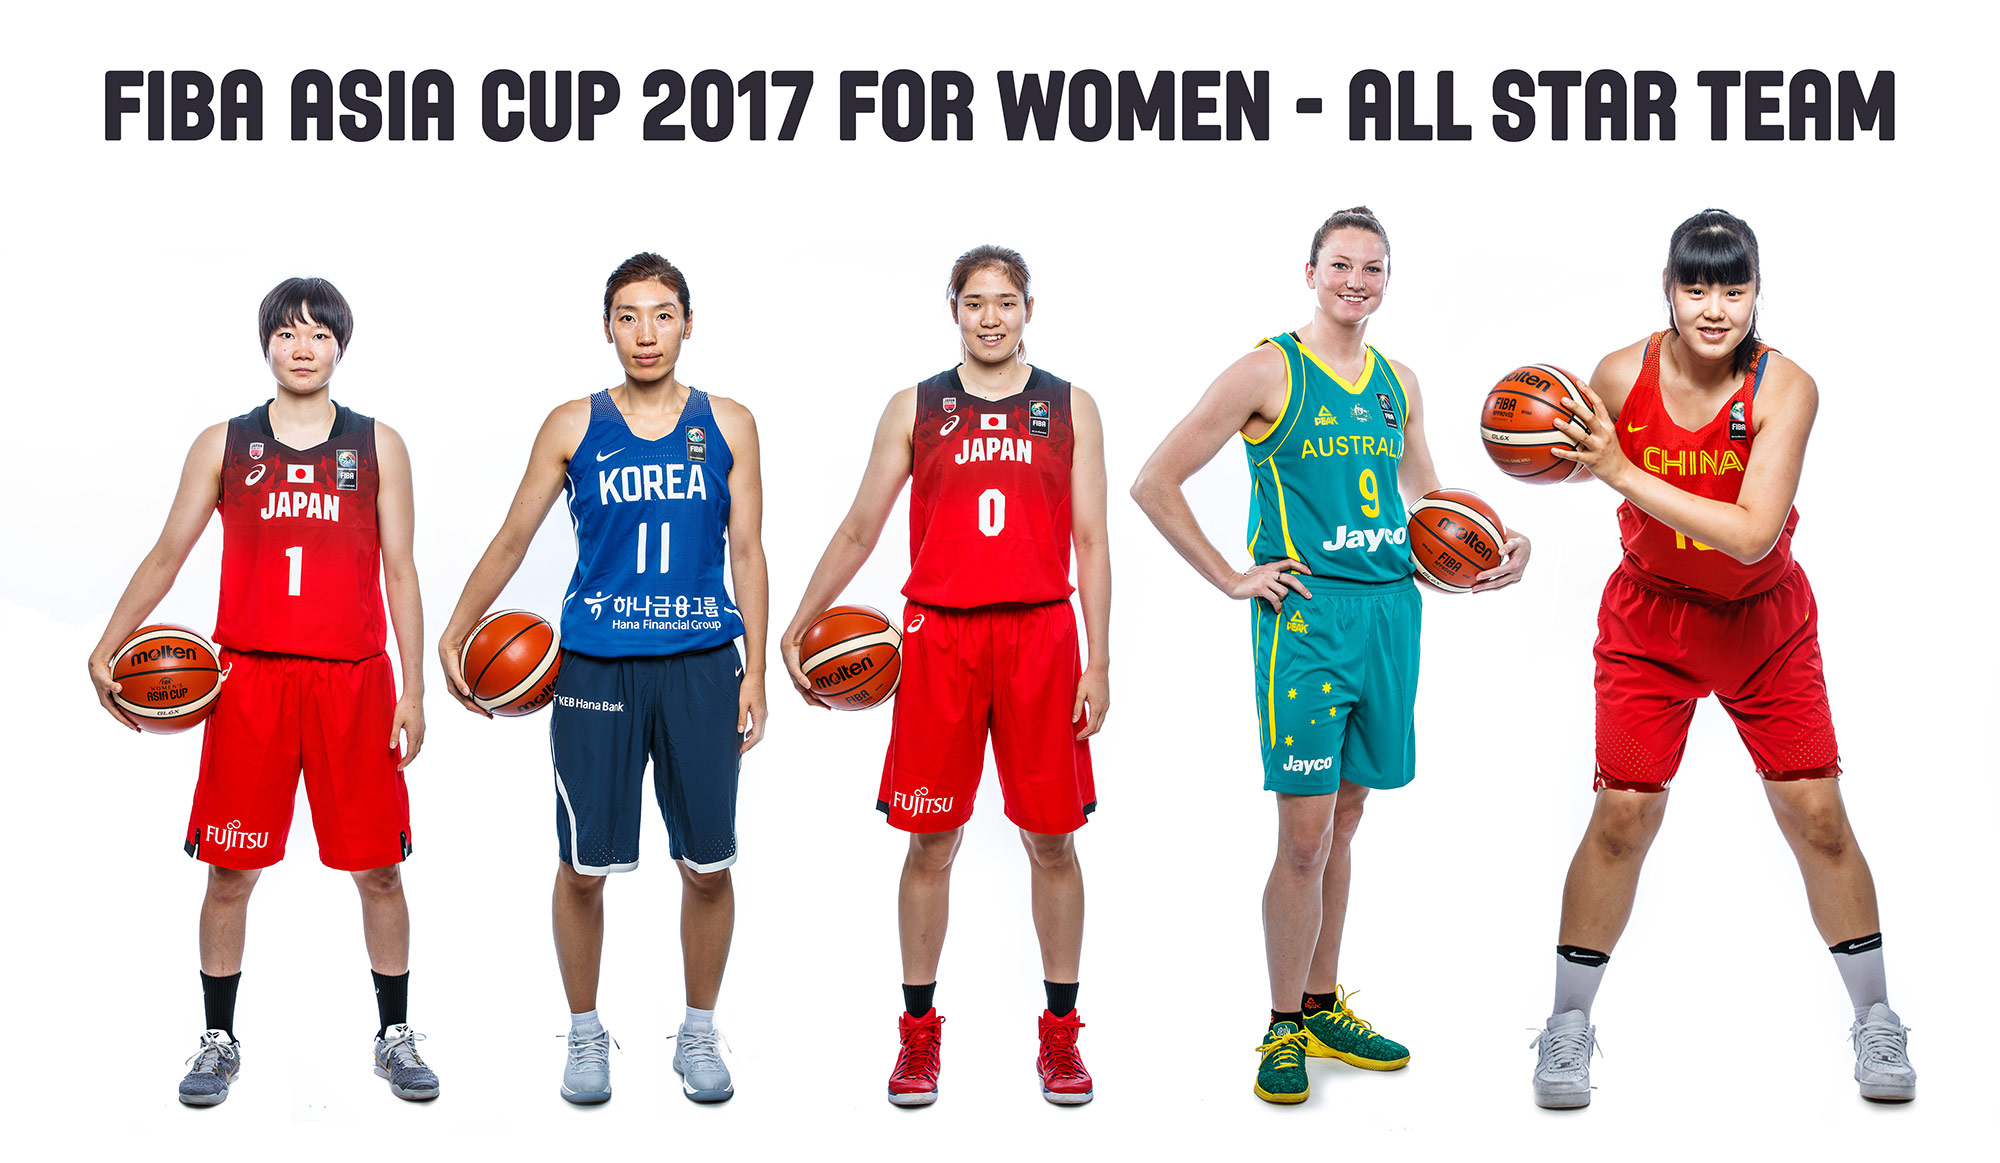 FIBA Asia Cup 2017 For Women